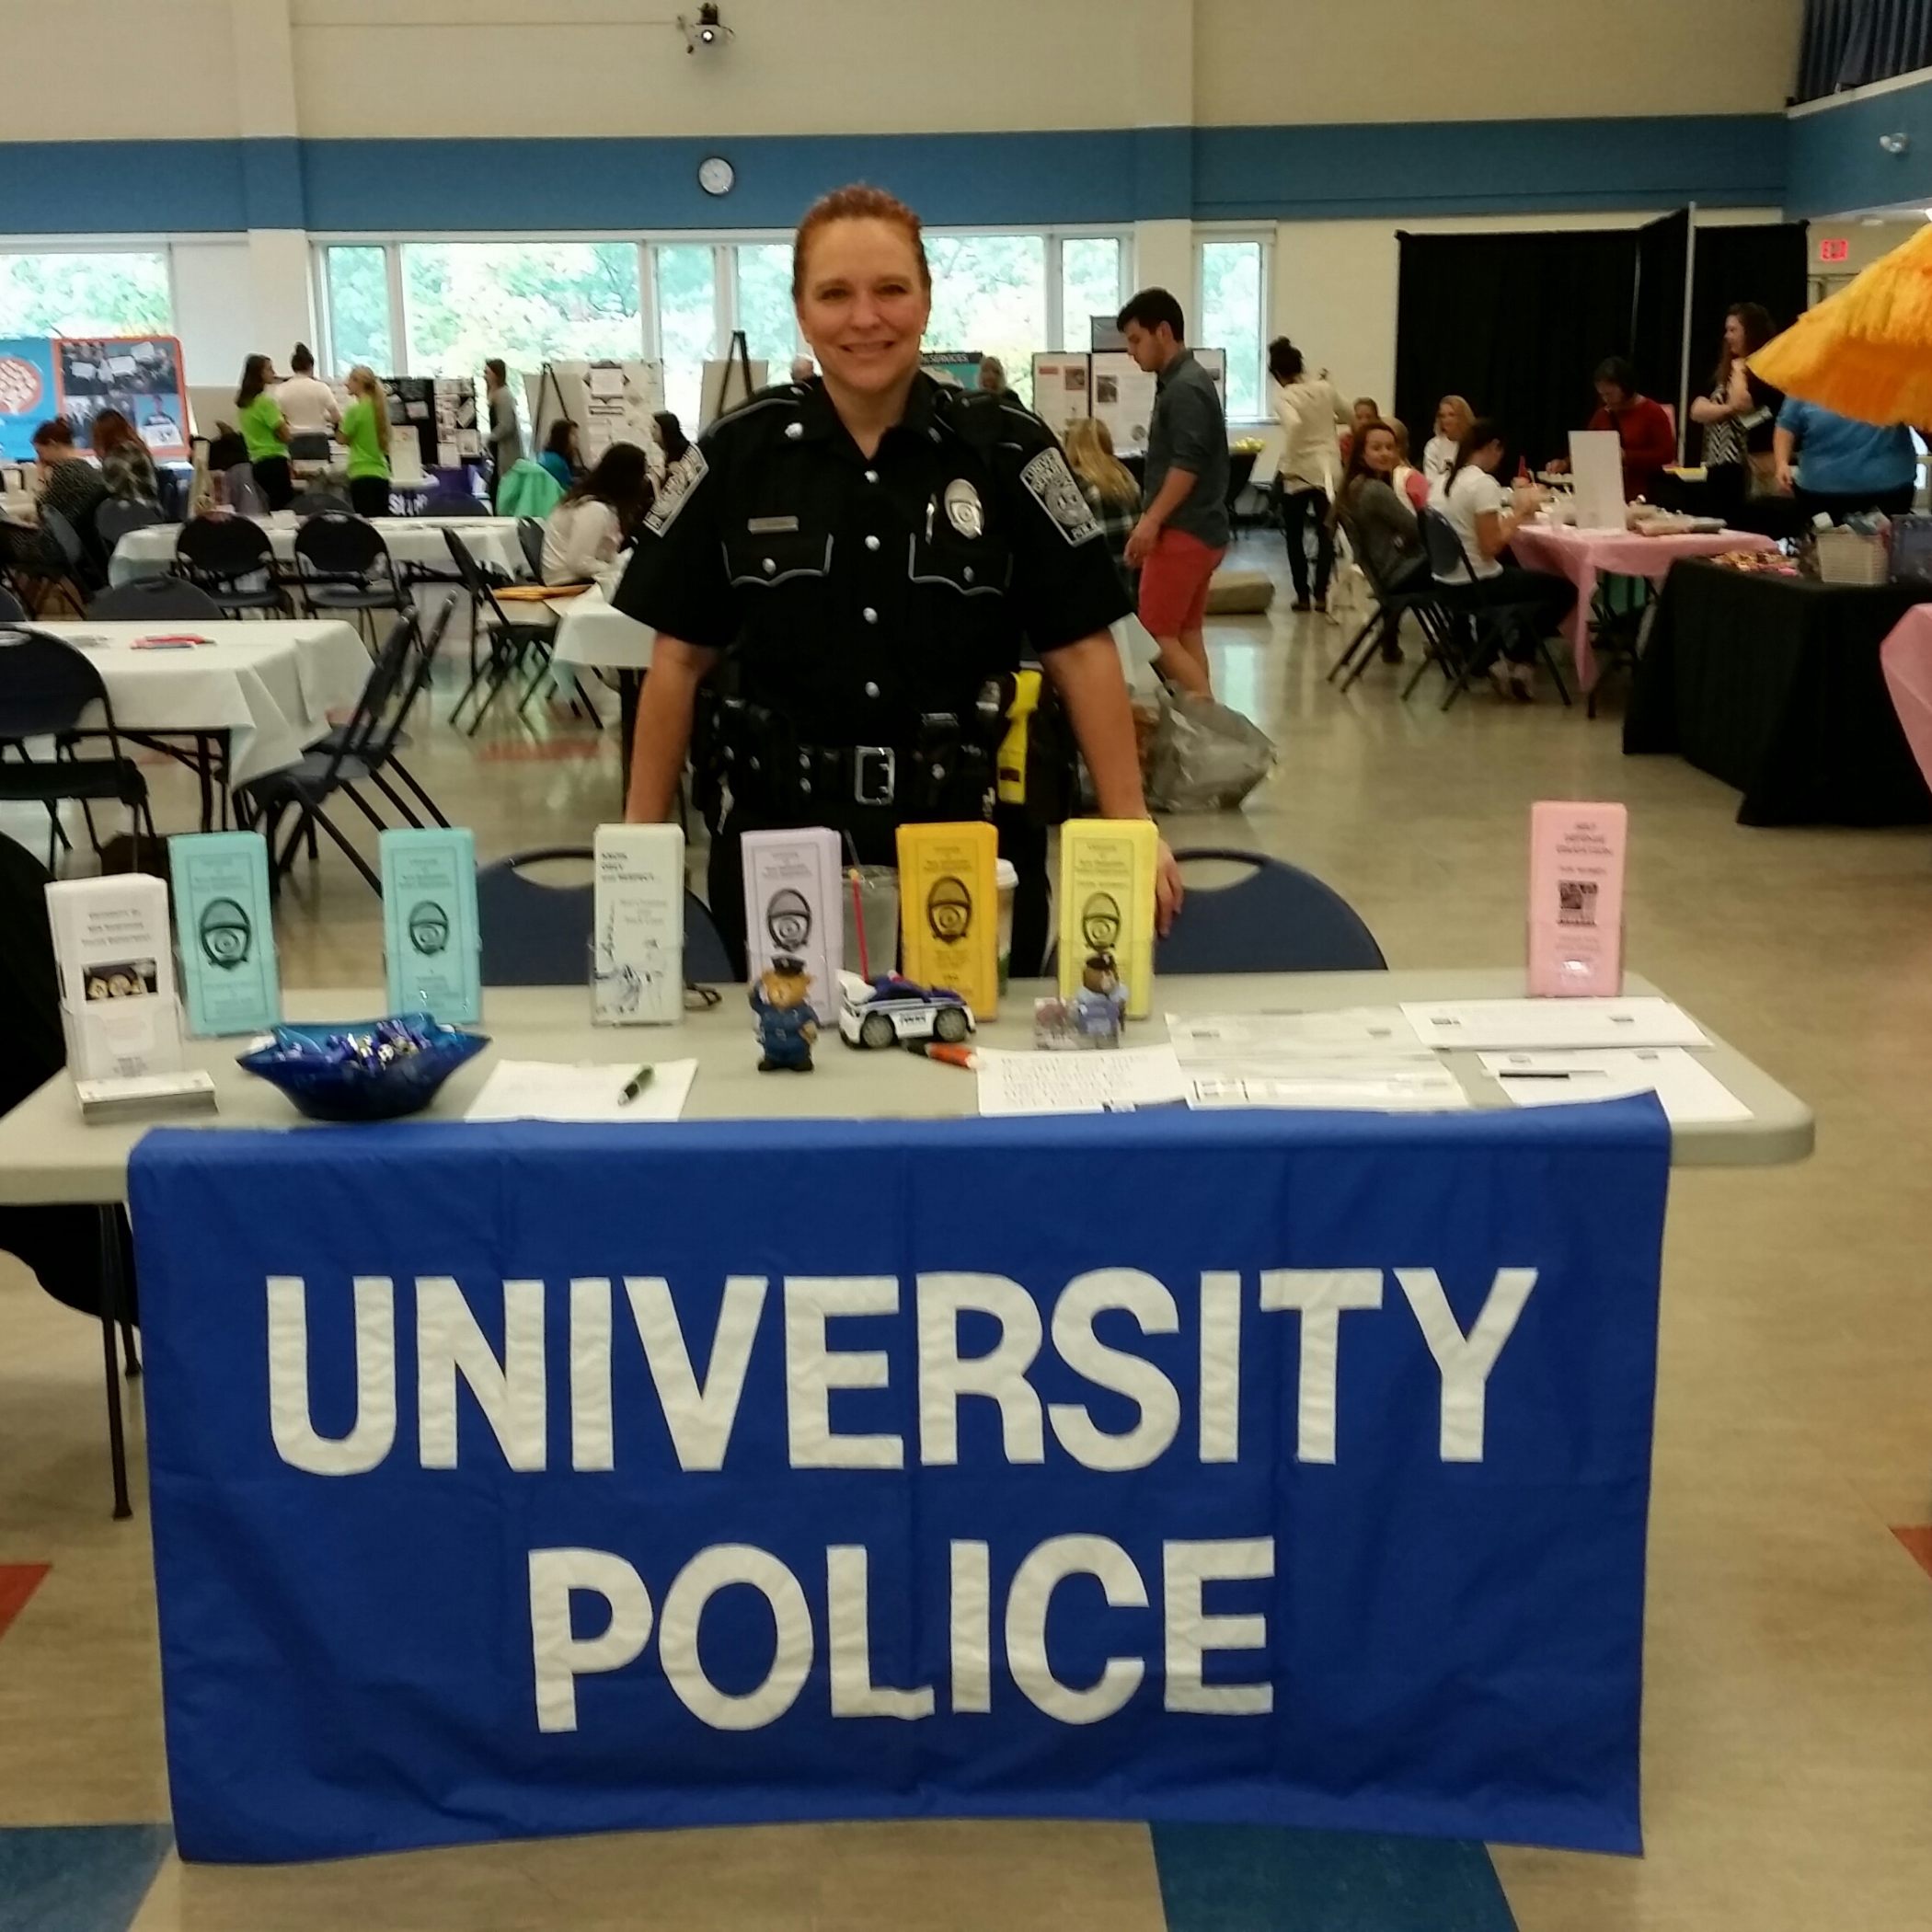 Officer Bowman at Women's Expo Event